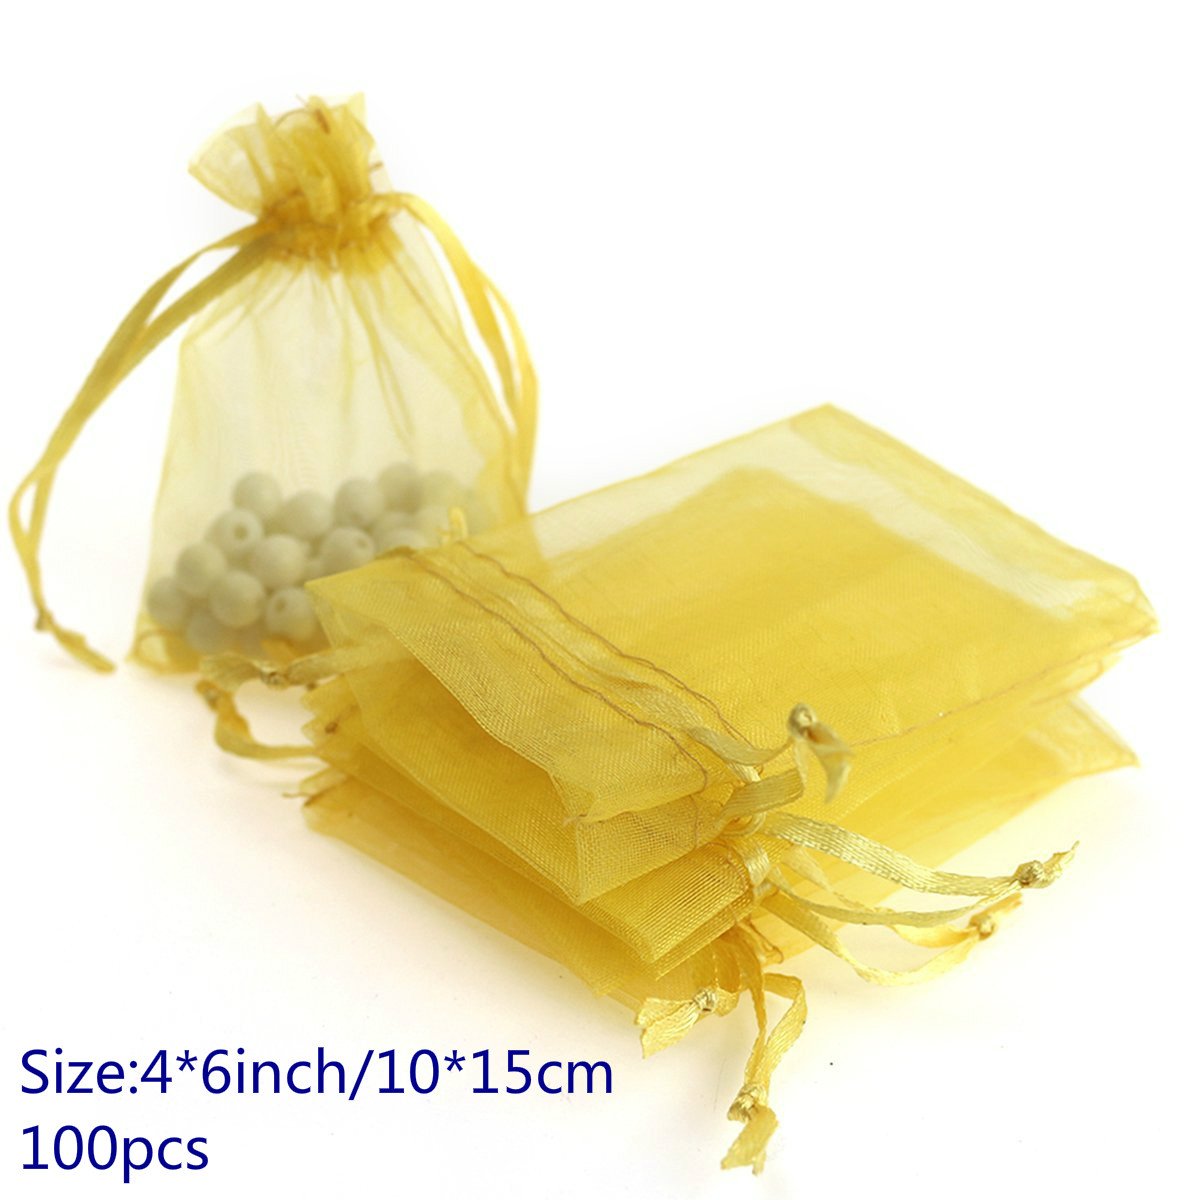 "Organza Bags 100pcs 4""x6"" Jewelry Favor Pouches Wedding Party Festival Gift Bags Candy Bags (Golden)"